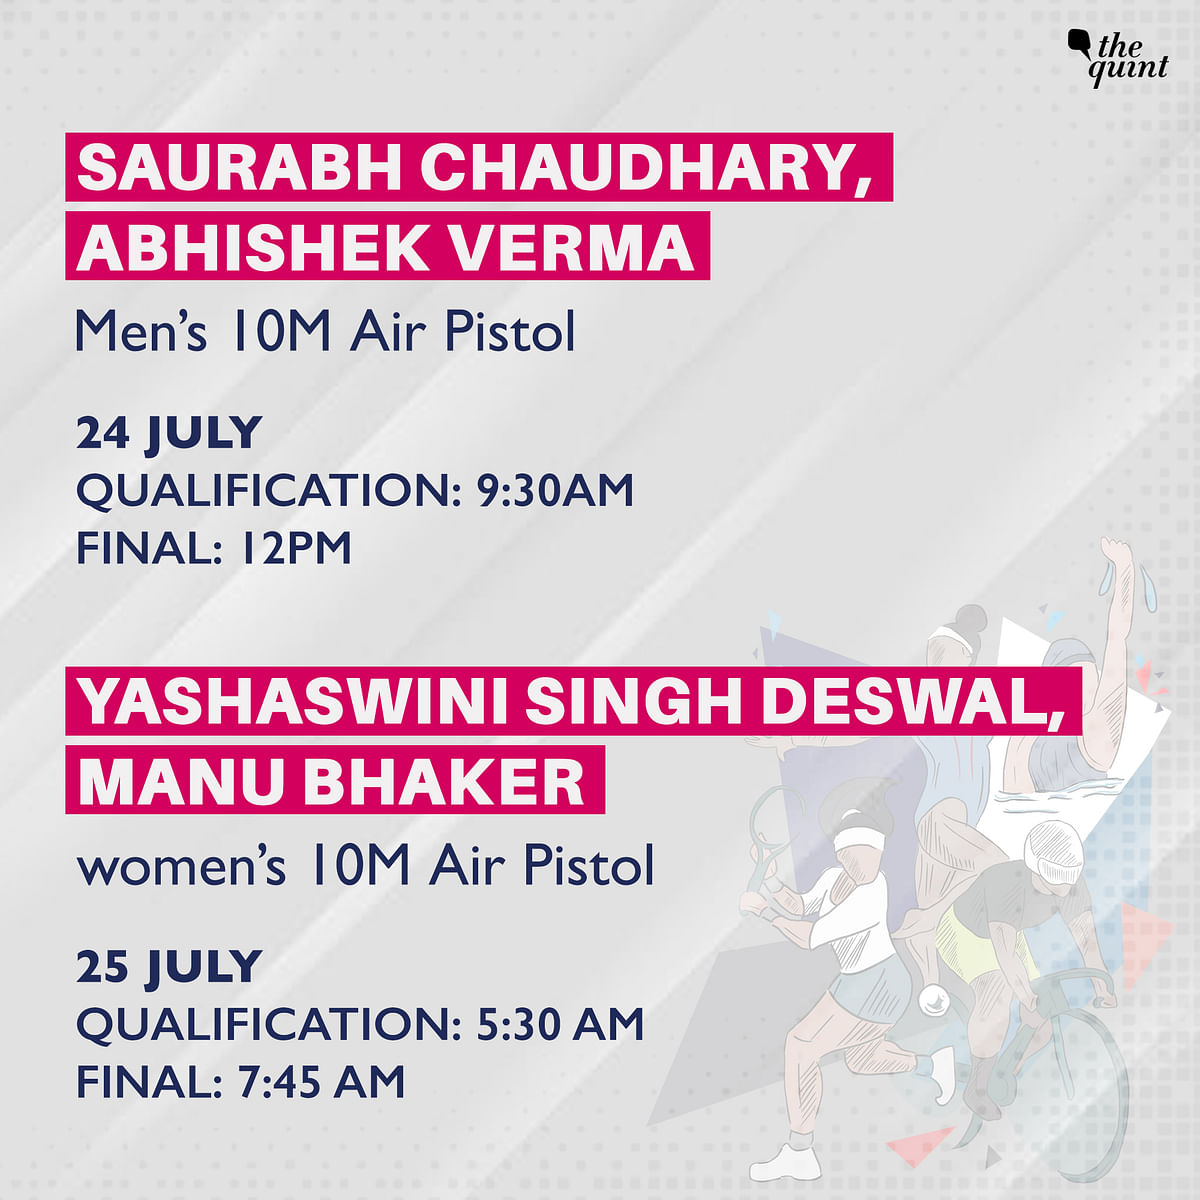 Full Schedule of Indian Athletes at 2020 Tokyo Olympics